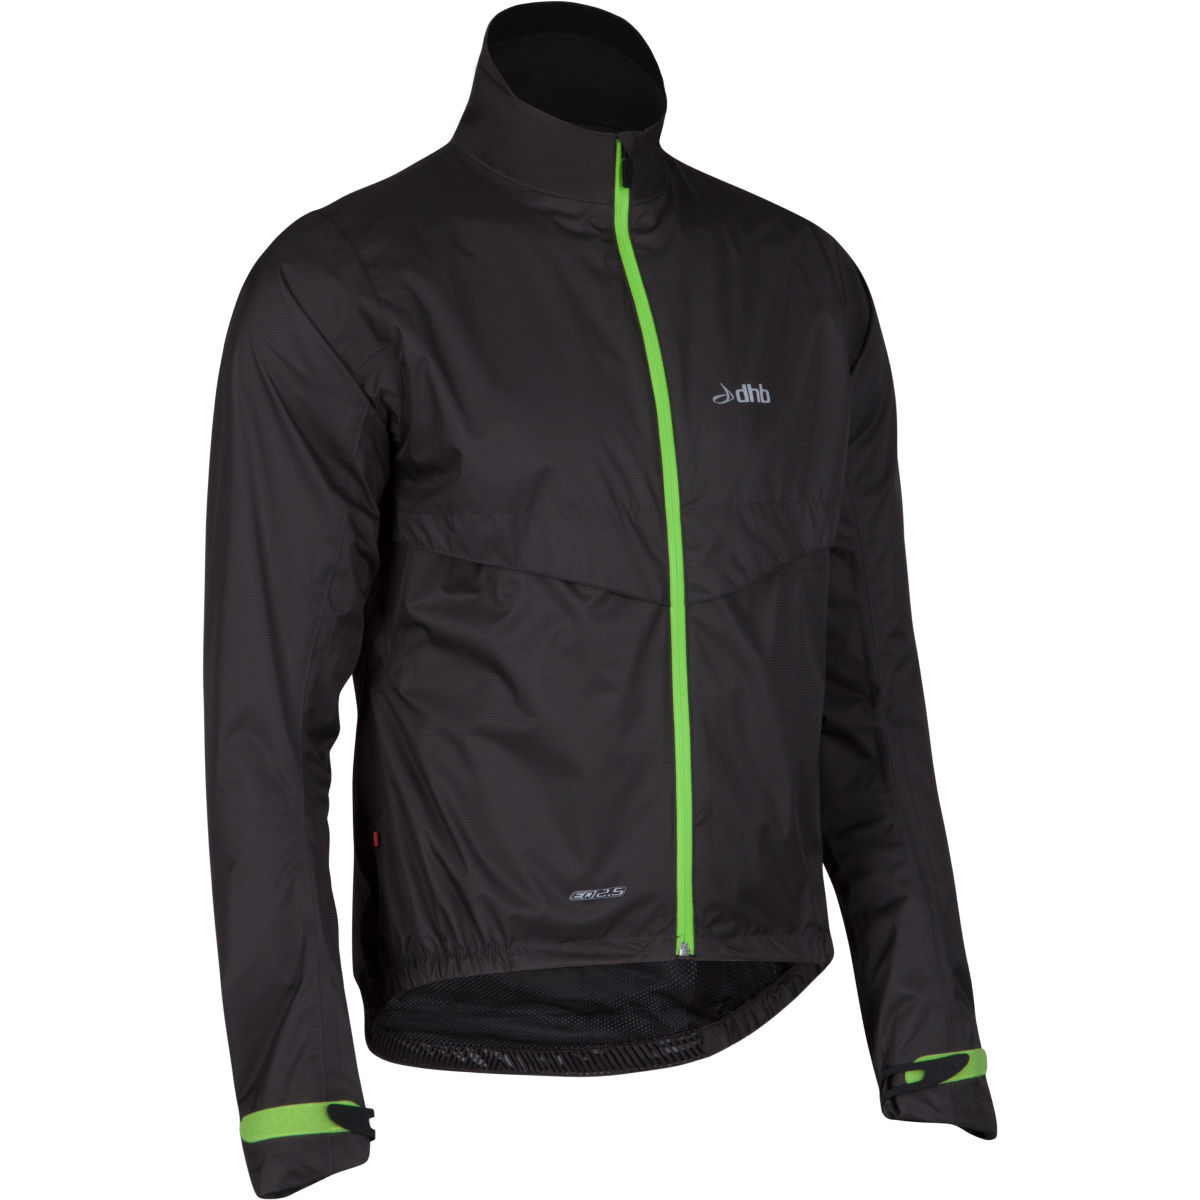 dhb EQ2.5 Waterproof Cycling Jacket   Cycling Waterproof Jackets